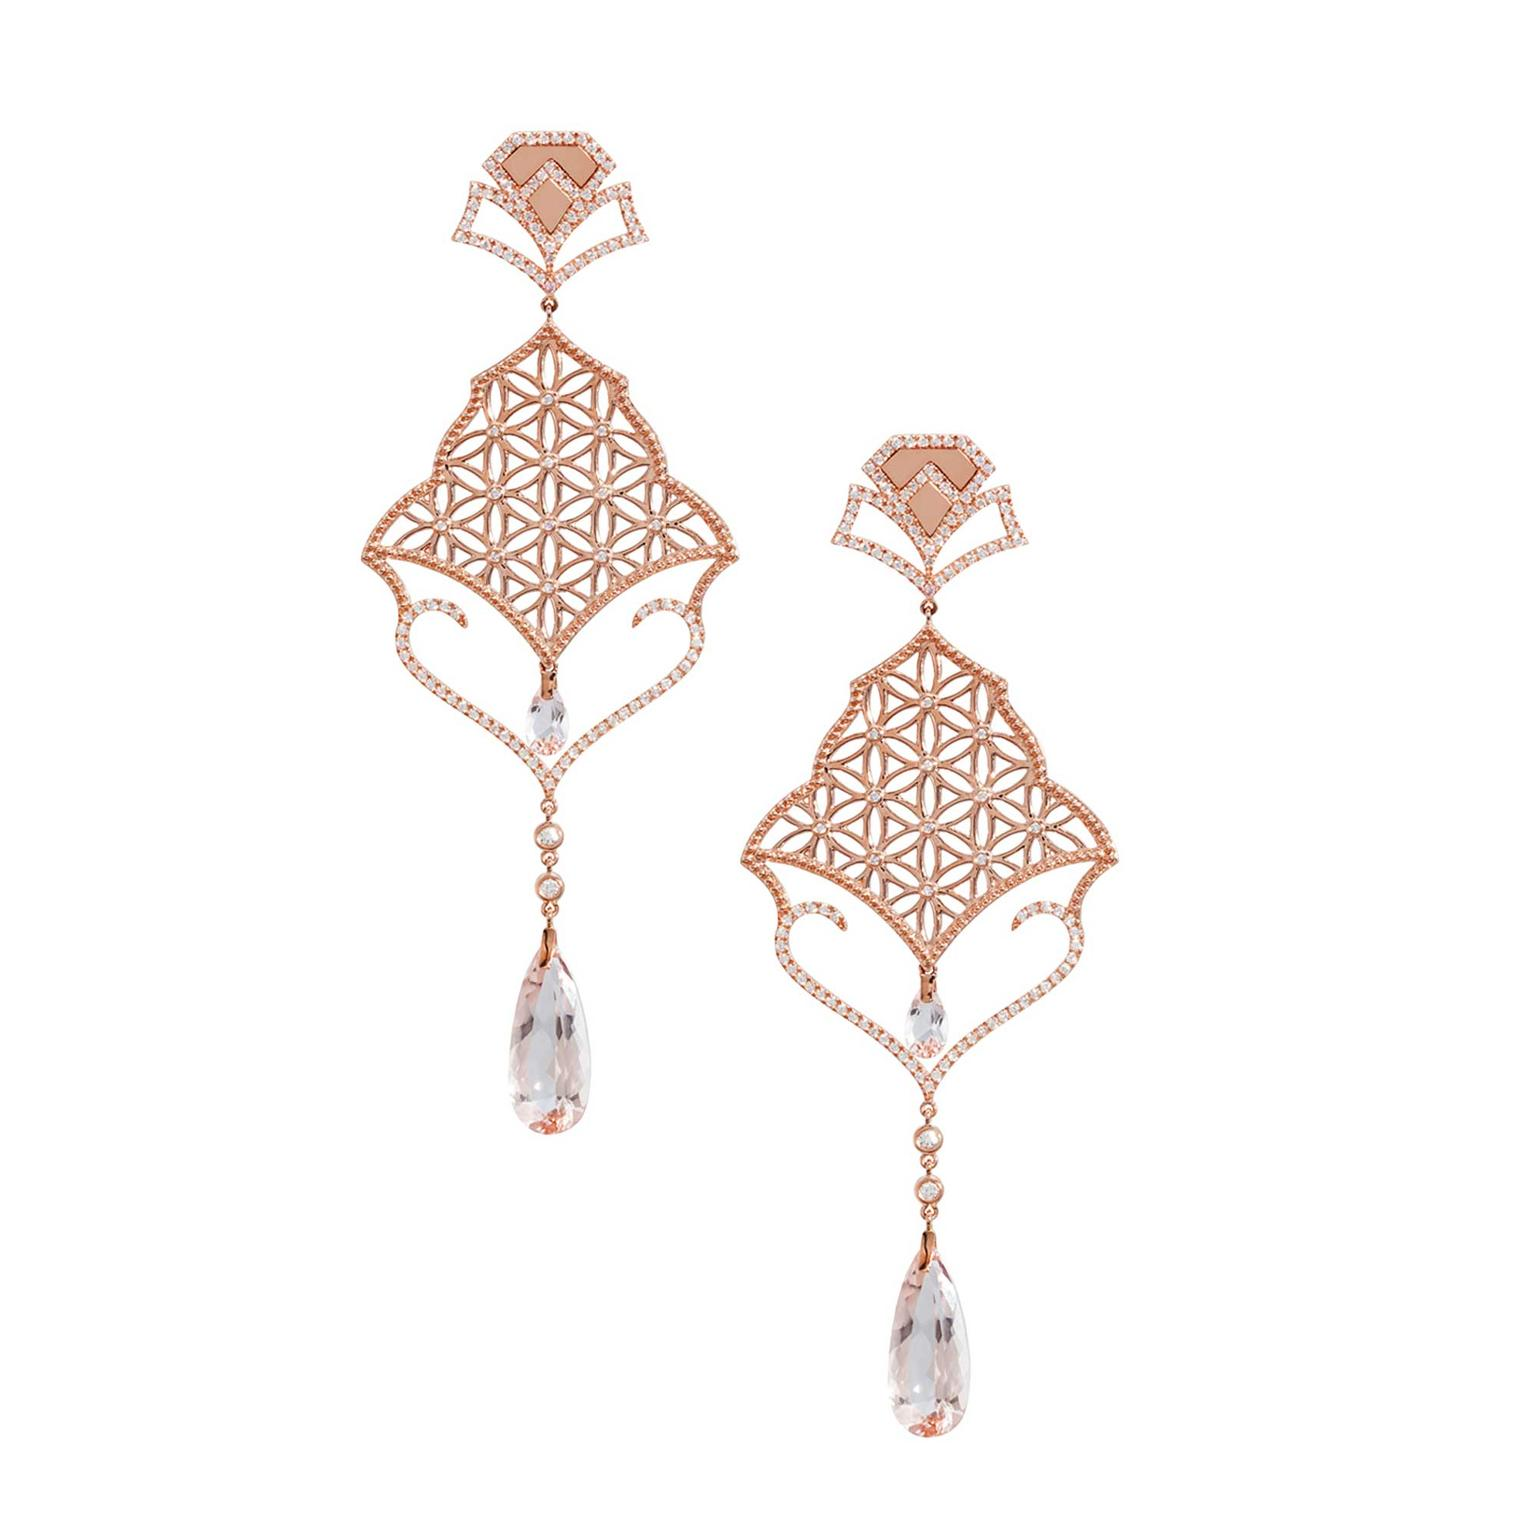 Dionea Orcini Semiramis rose gold earrings